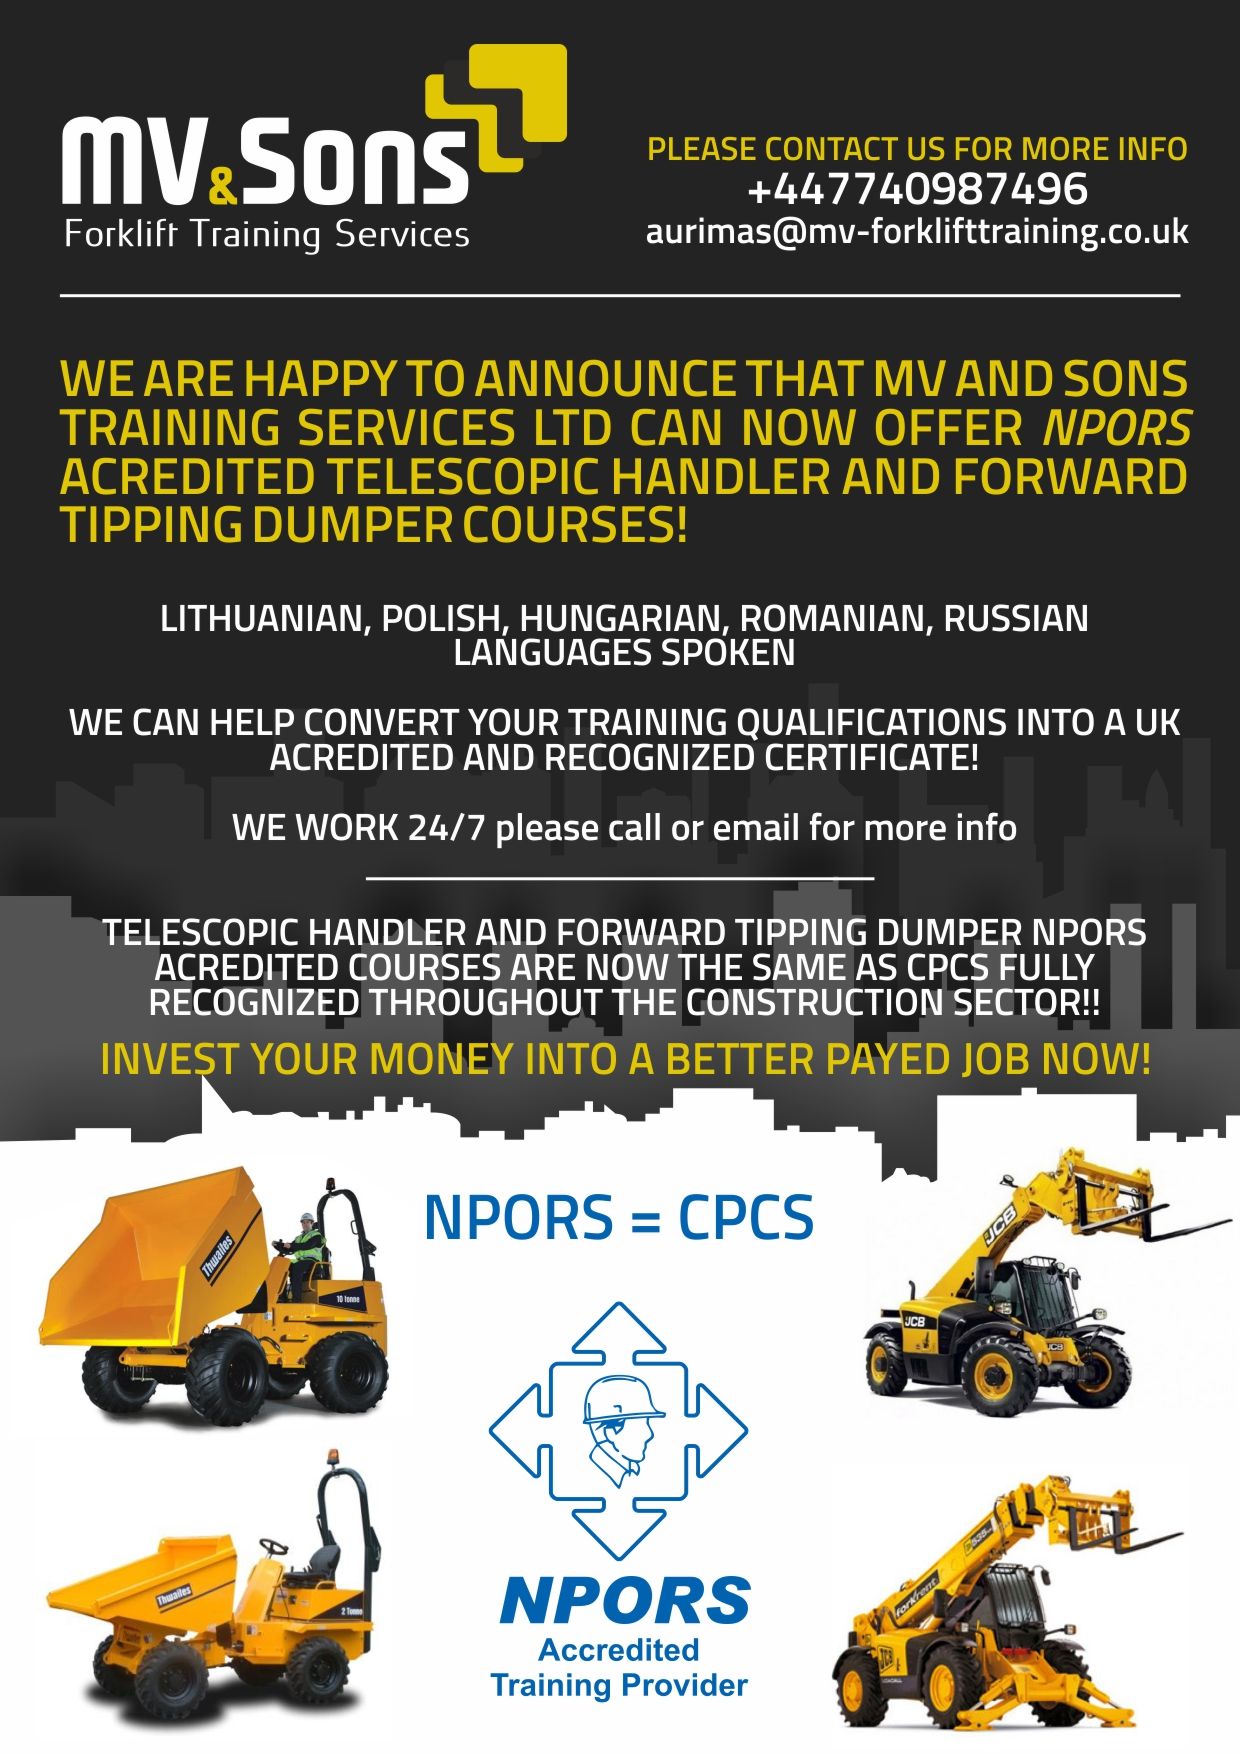 Mv sons forklift training services ltd hiab training lorry back to top of page xflitez Choice Image